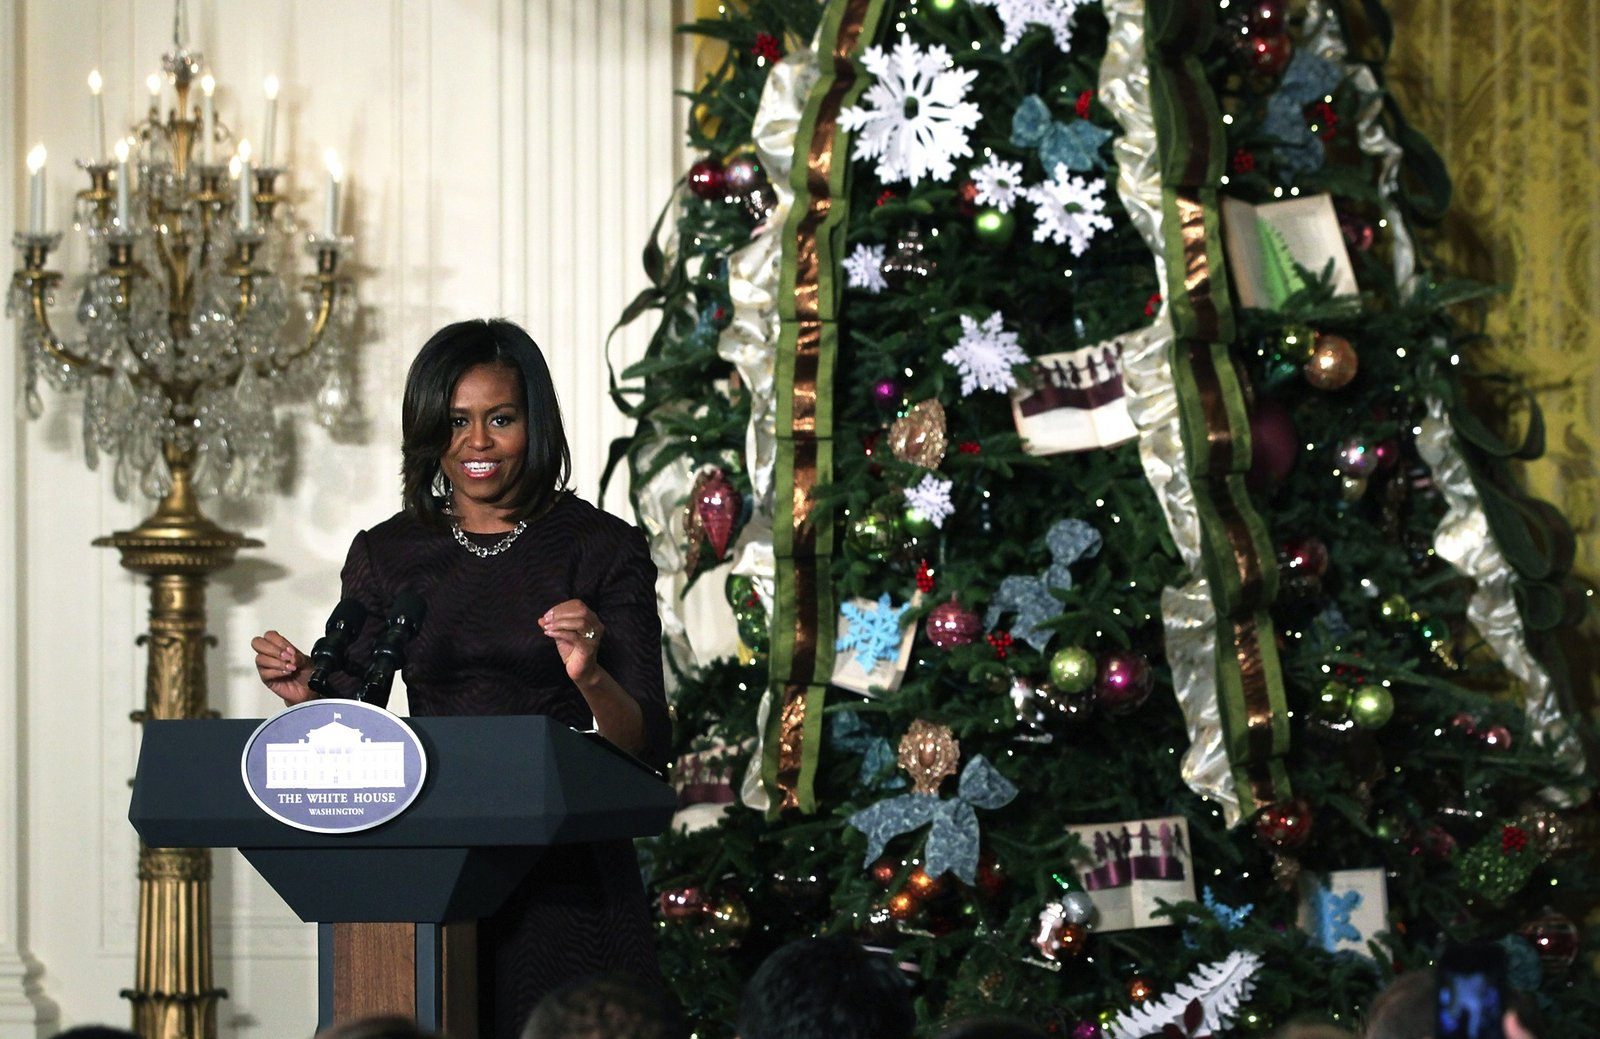 https://i0.wp.com/media.vogue.com/r/w_1600//wp-content/uploads/2014/12/03/holding-white-house-holiday-decorations-michelle-obama1.jpg